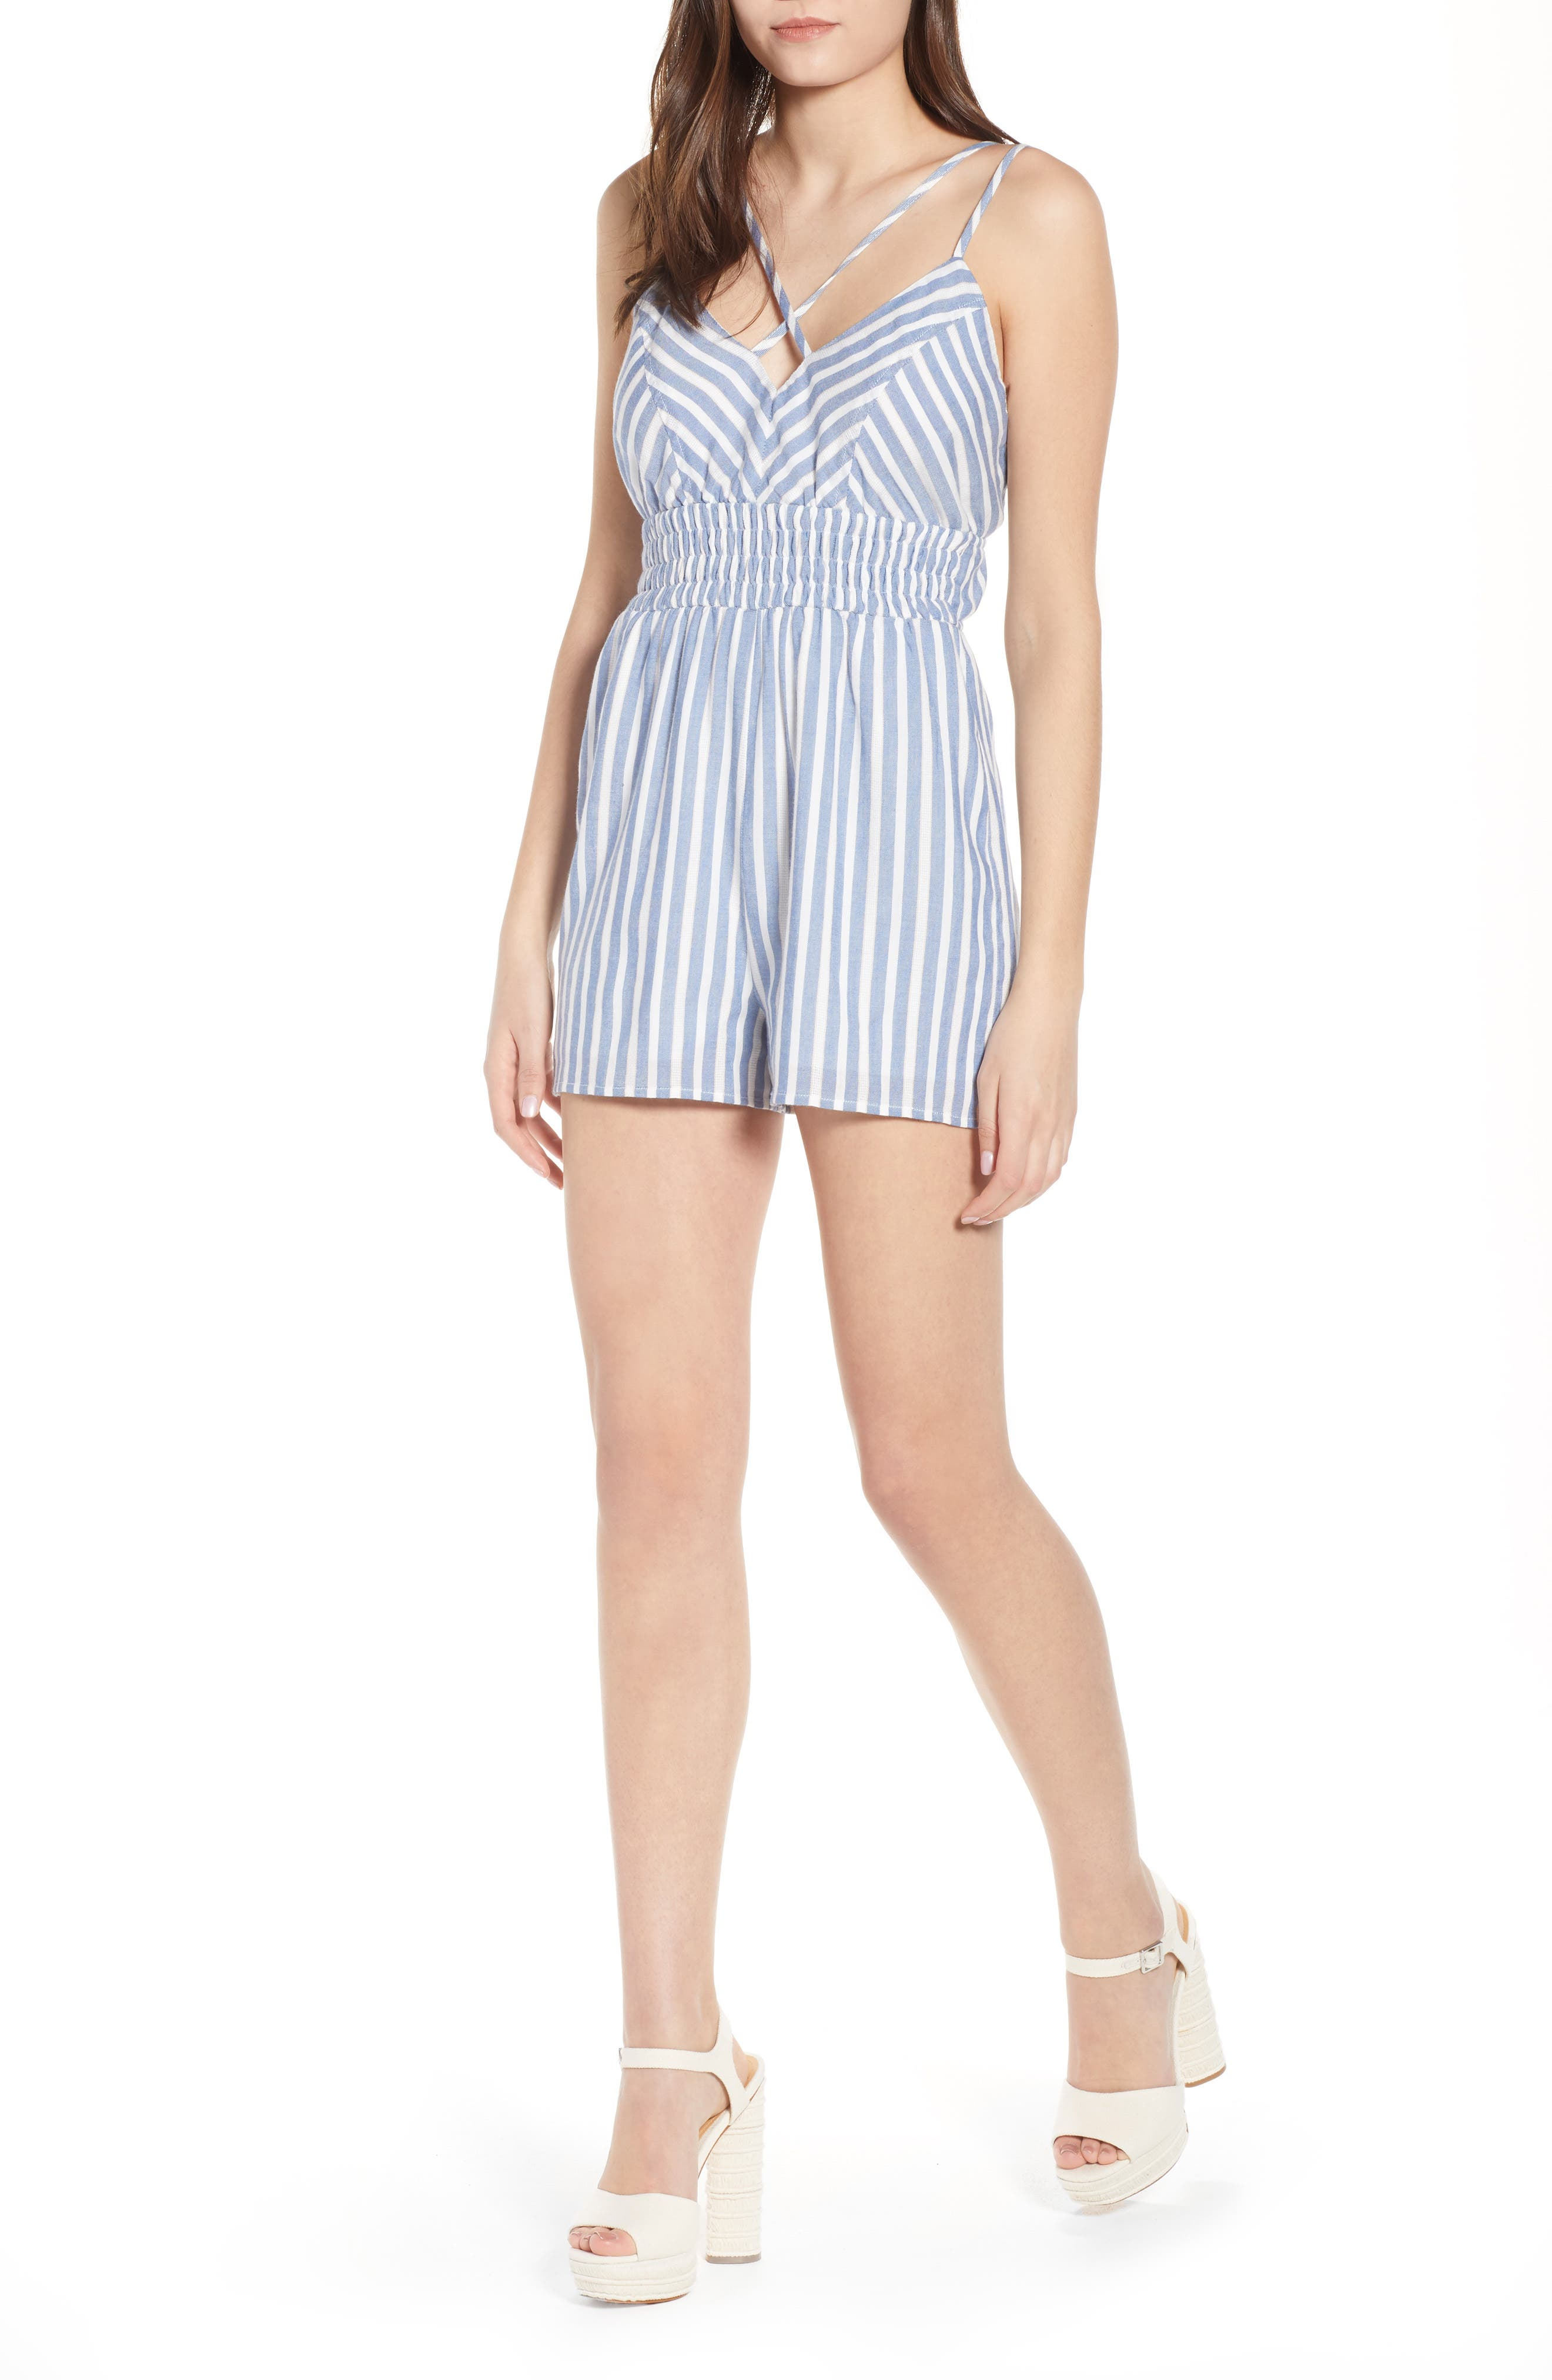 Row A Smocked Romper